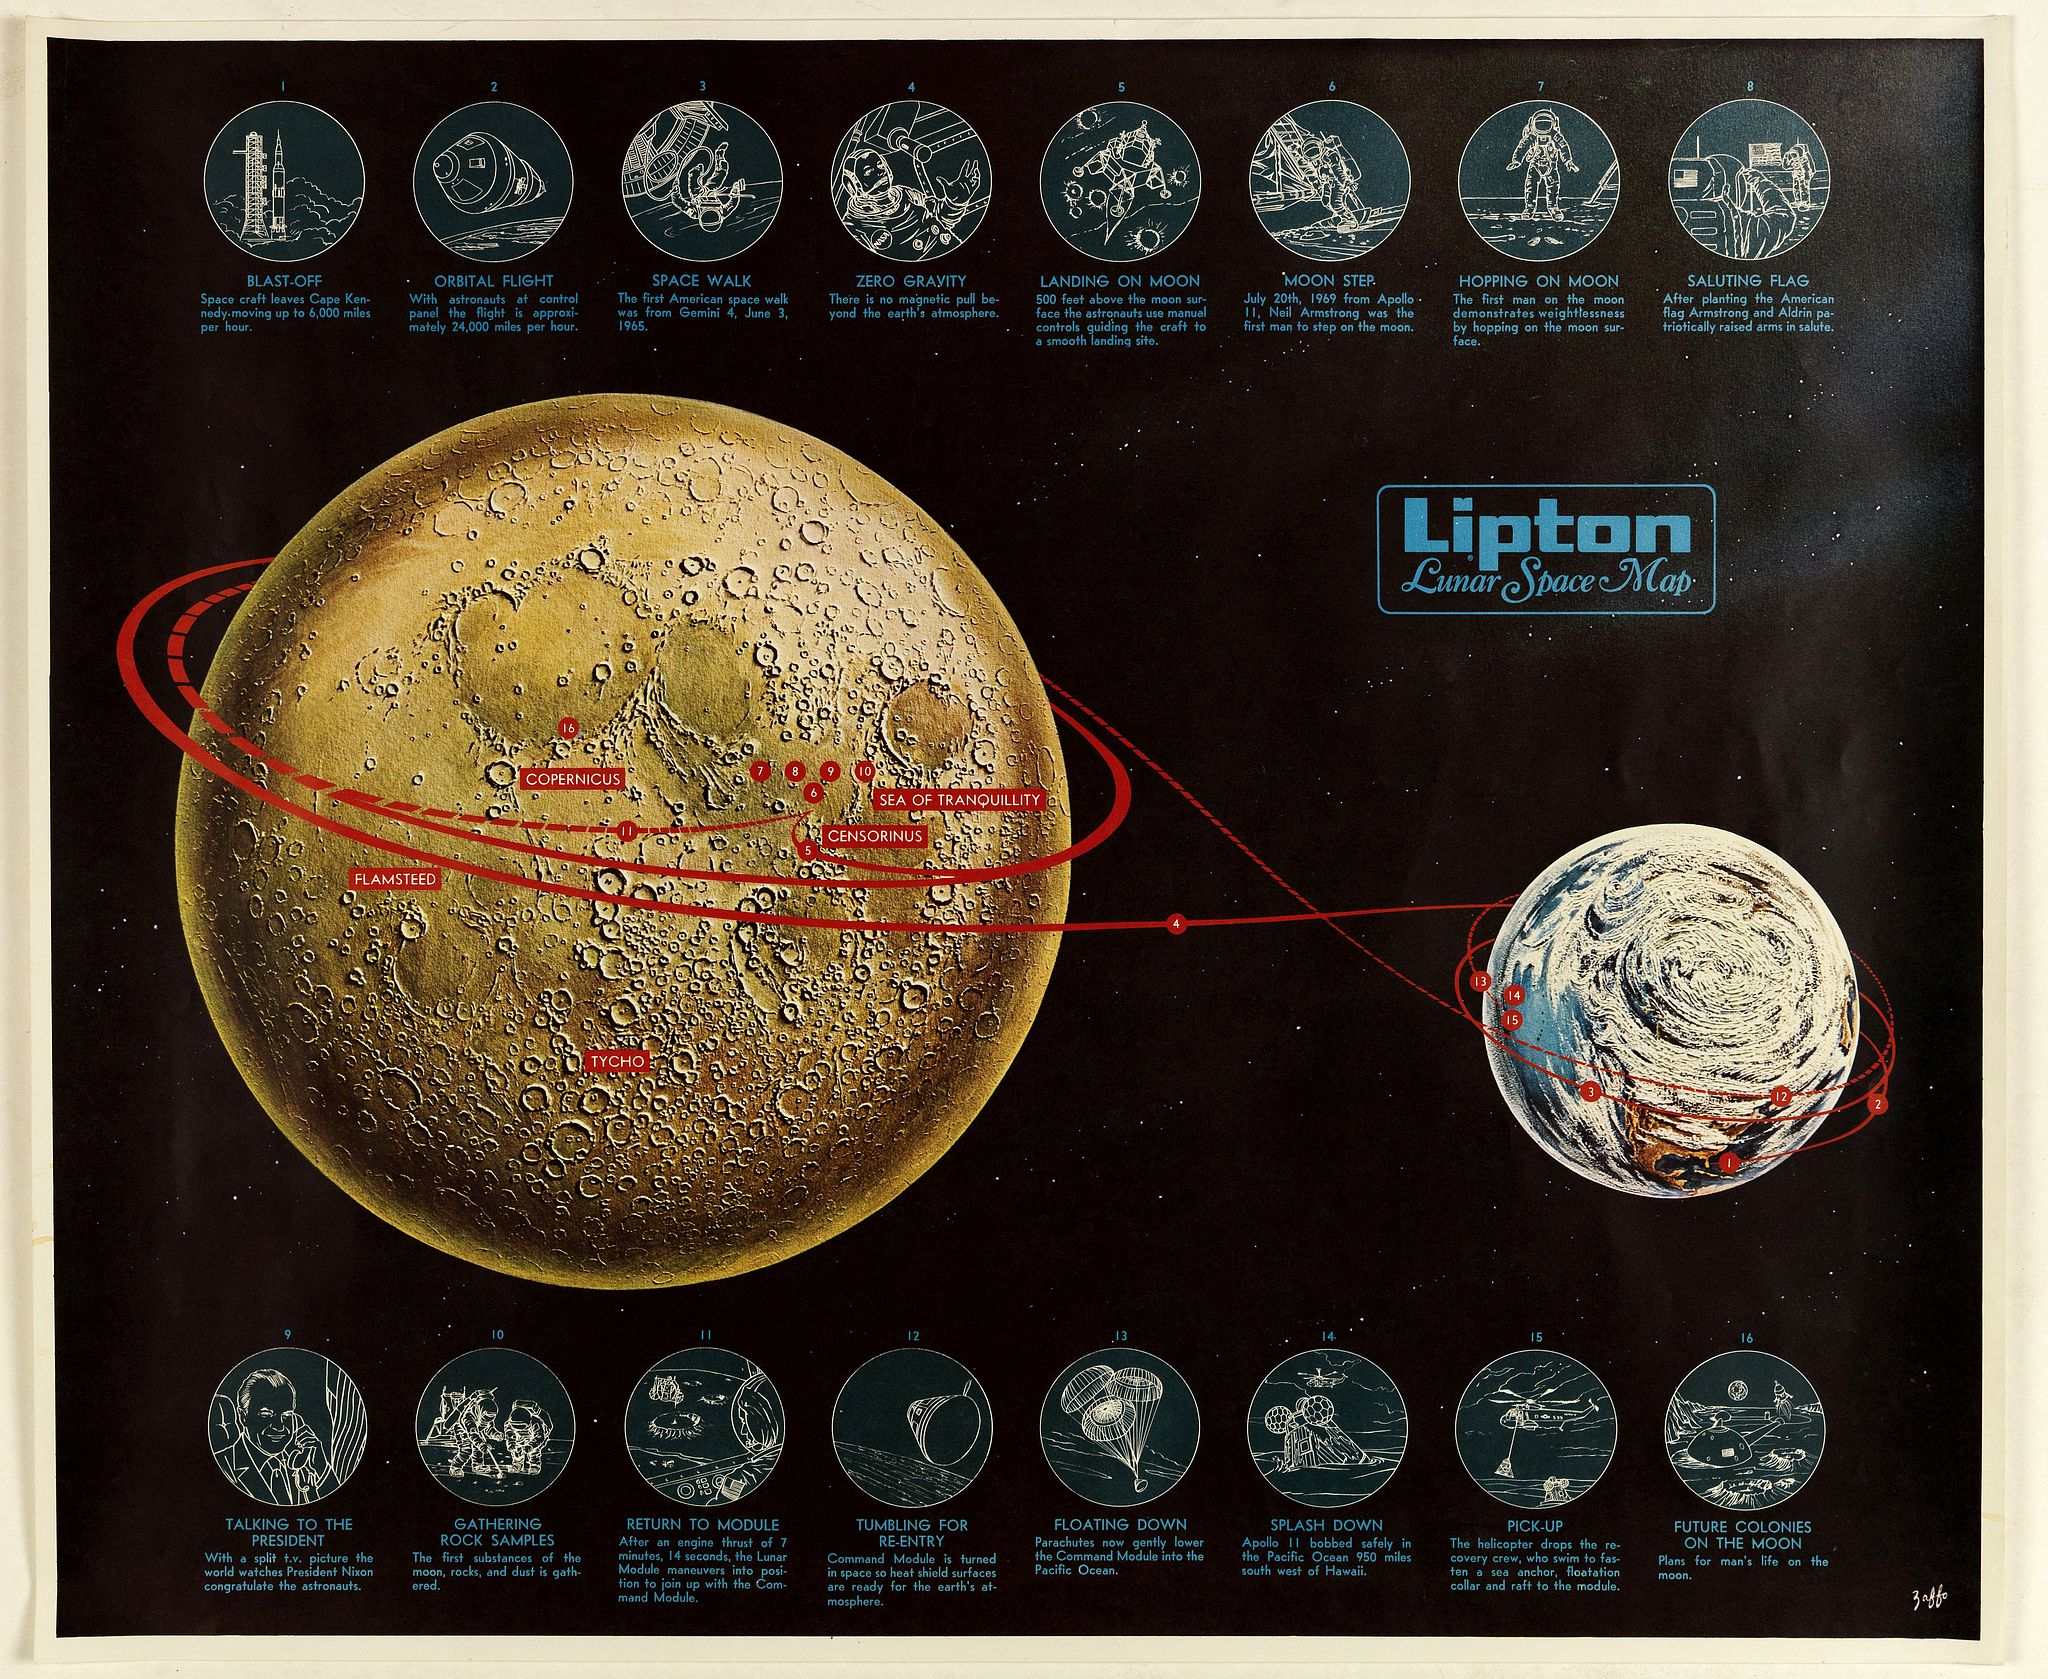 ZAFFO, G.J.,  LIPTON Lunar Space Map, antique map, old maps